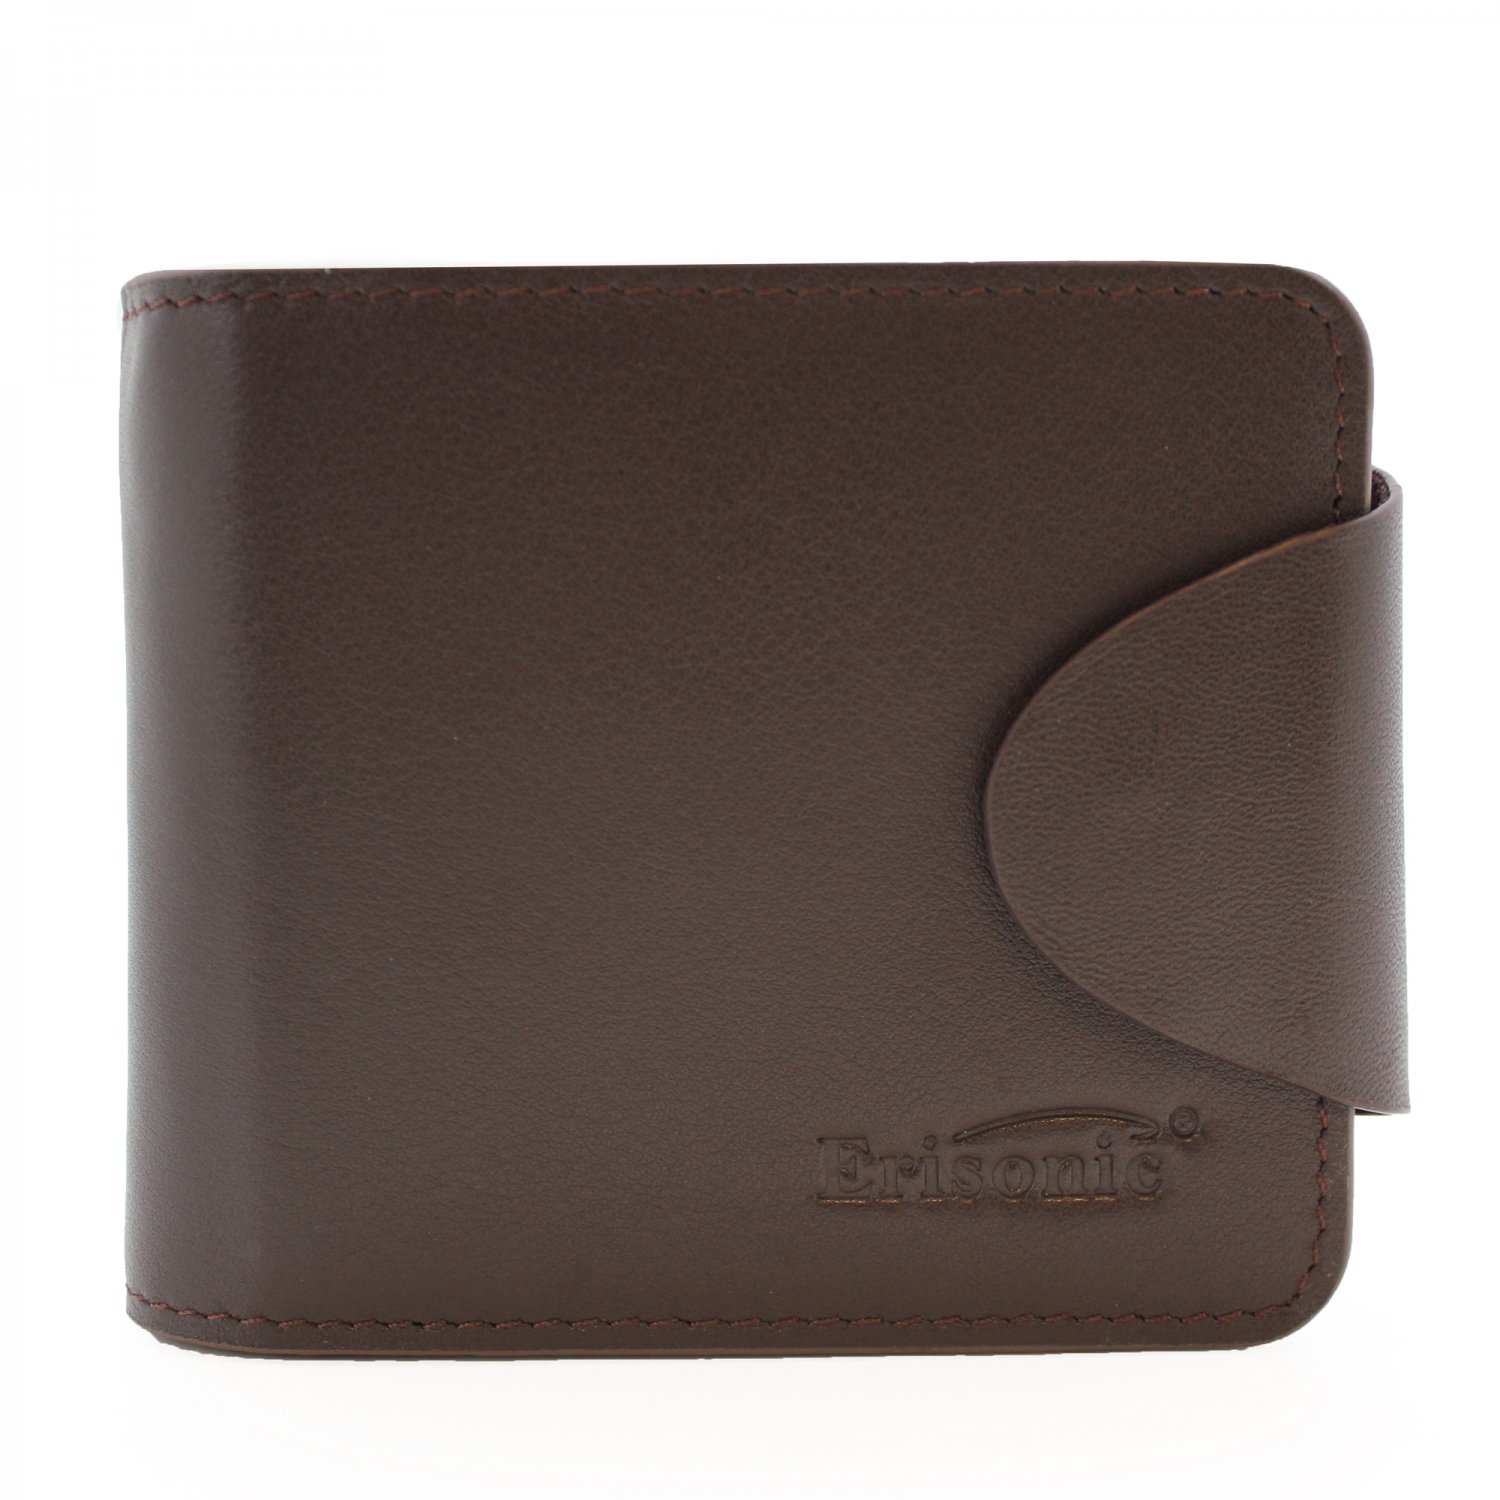 Erisonic Smart Wallet for iphone Bluetooth Wallet with Iphone/Android app Travel Safe wallet